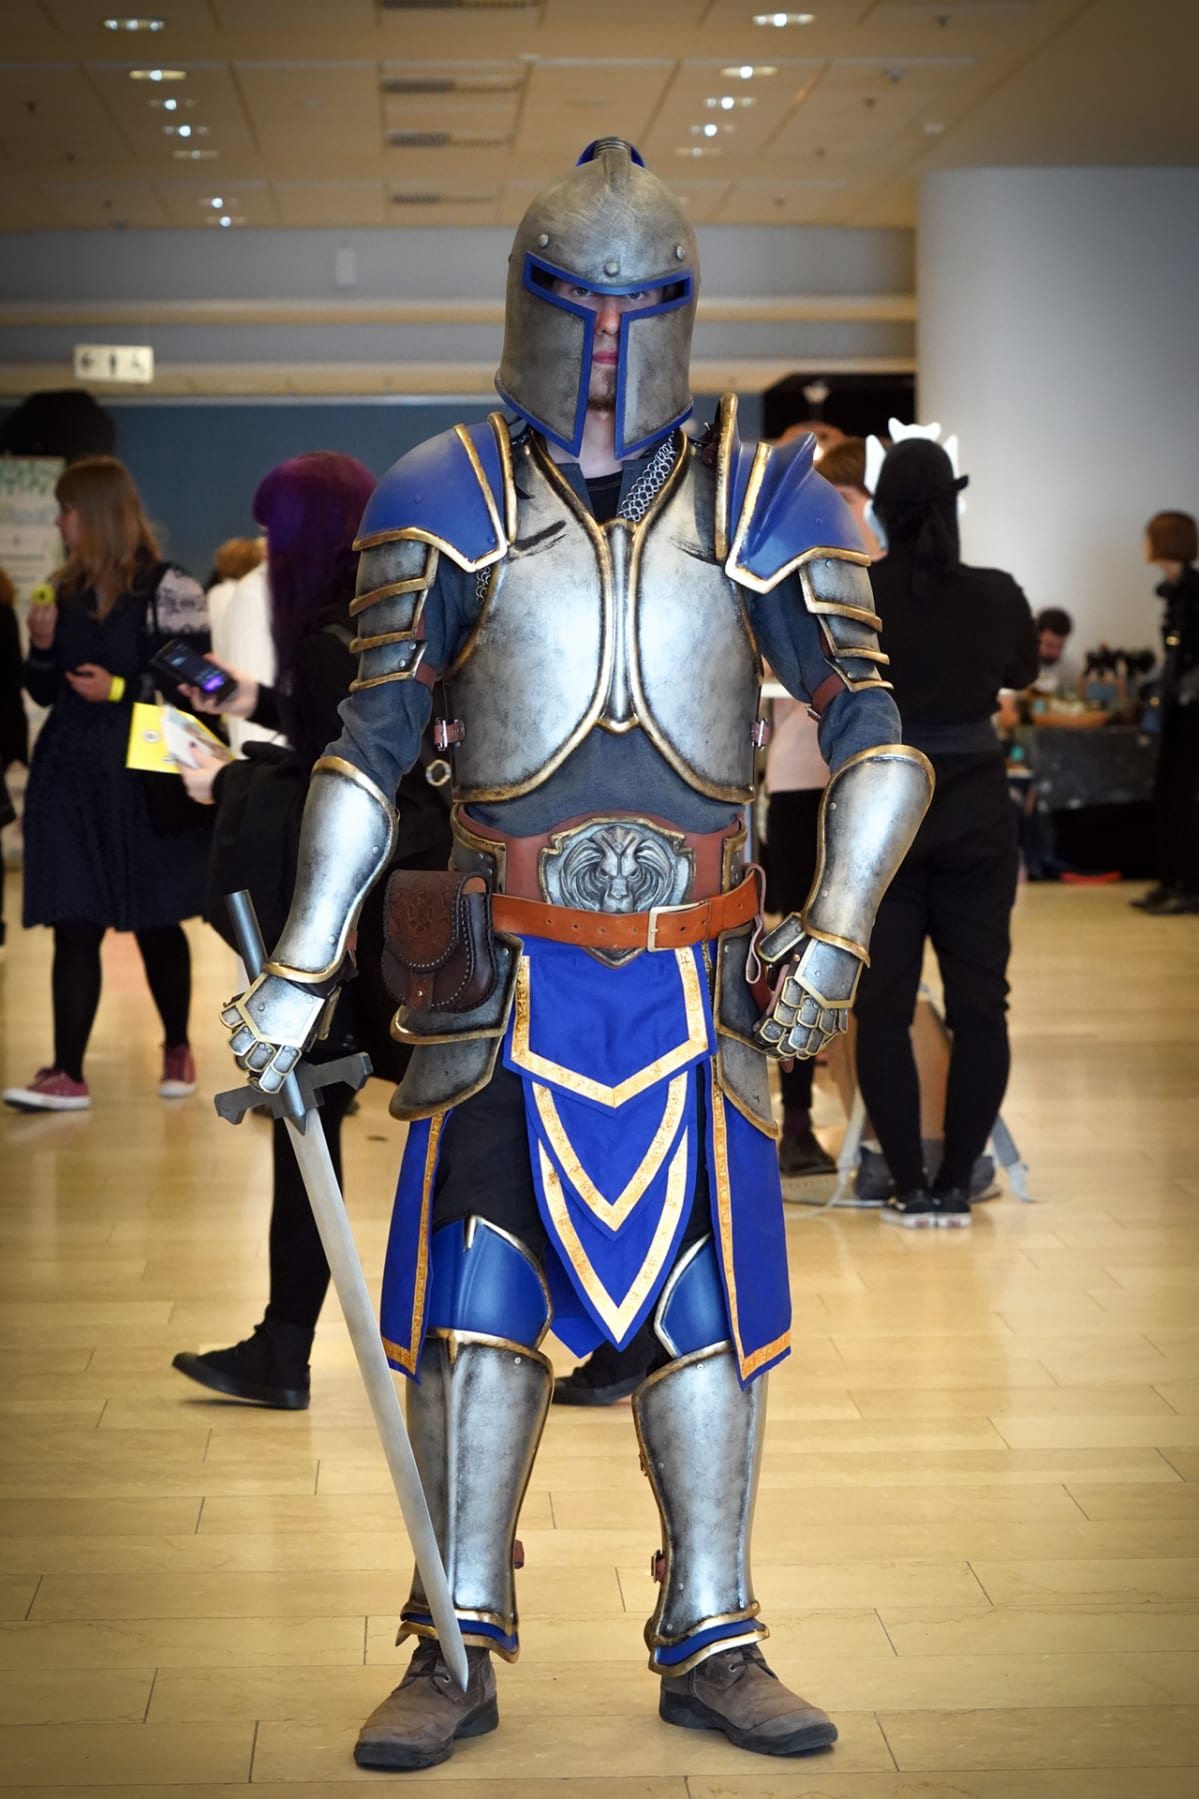 Joni Ruonala, Stormwind Guard, World of Warcraft, Popcult, cosplay